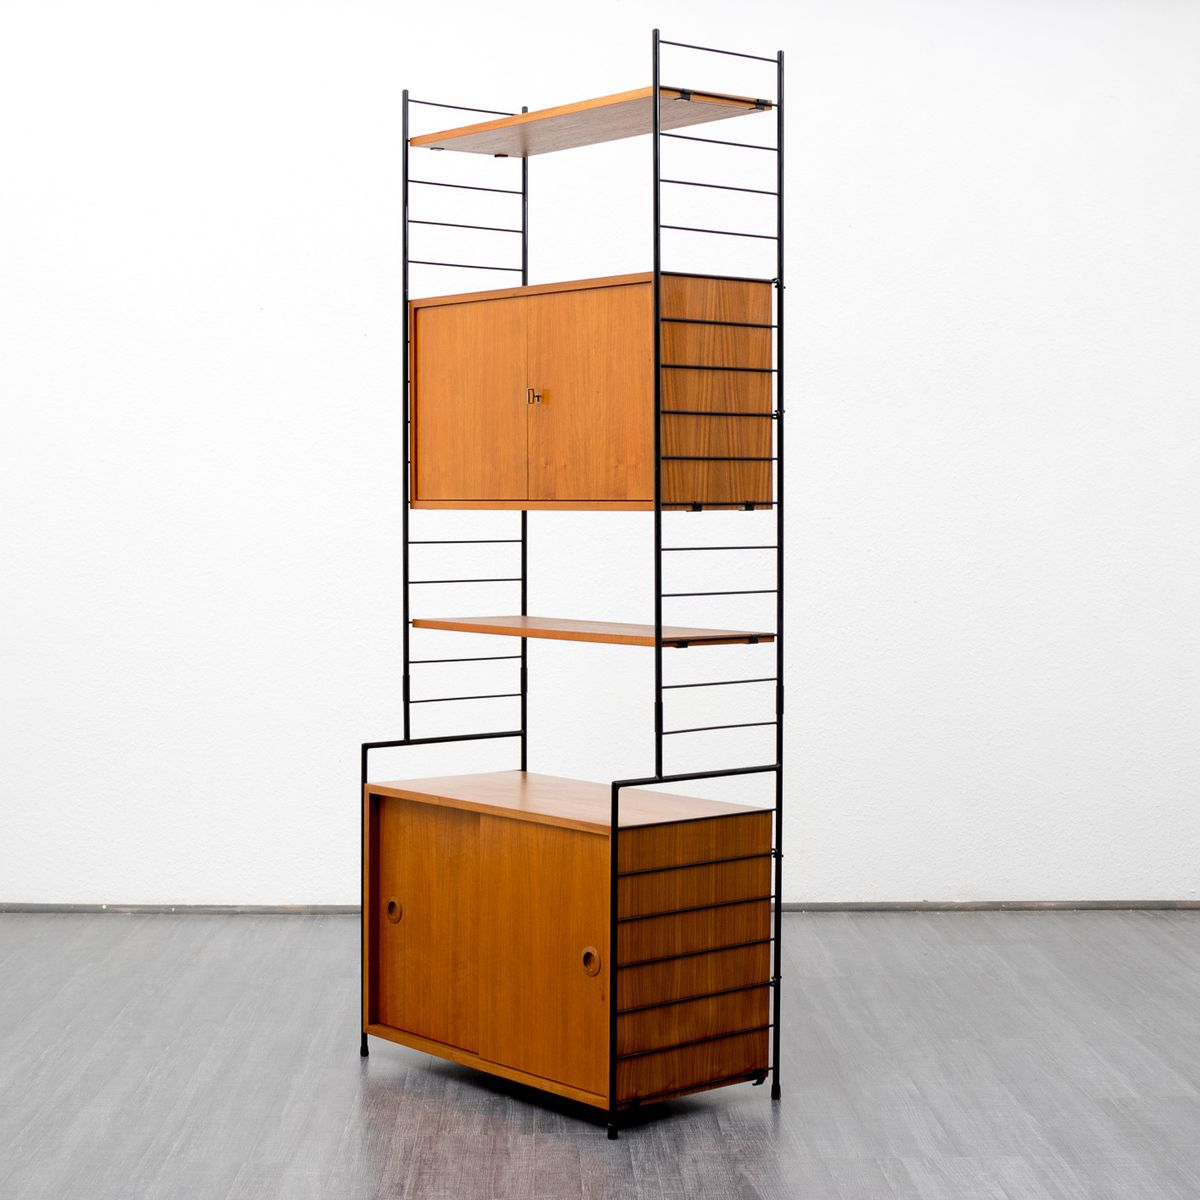 Modular shelf unit from whb 1960s for sale at pamono for Prefab units